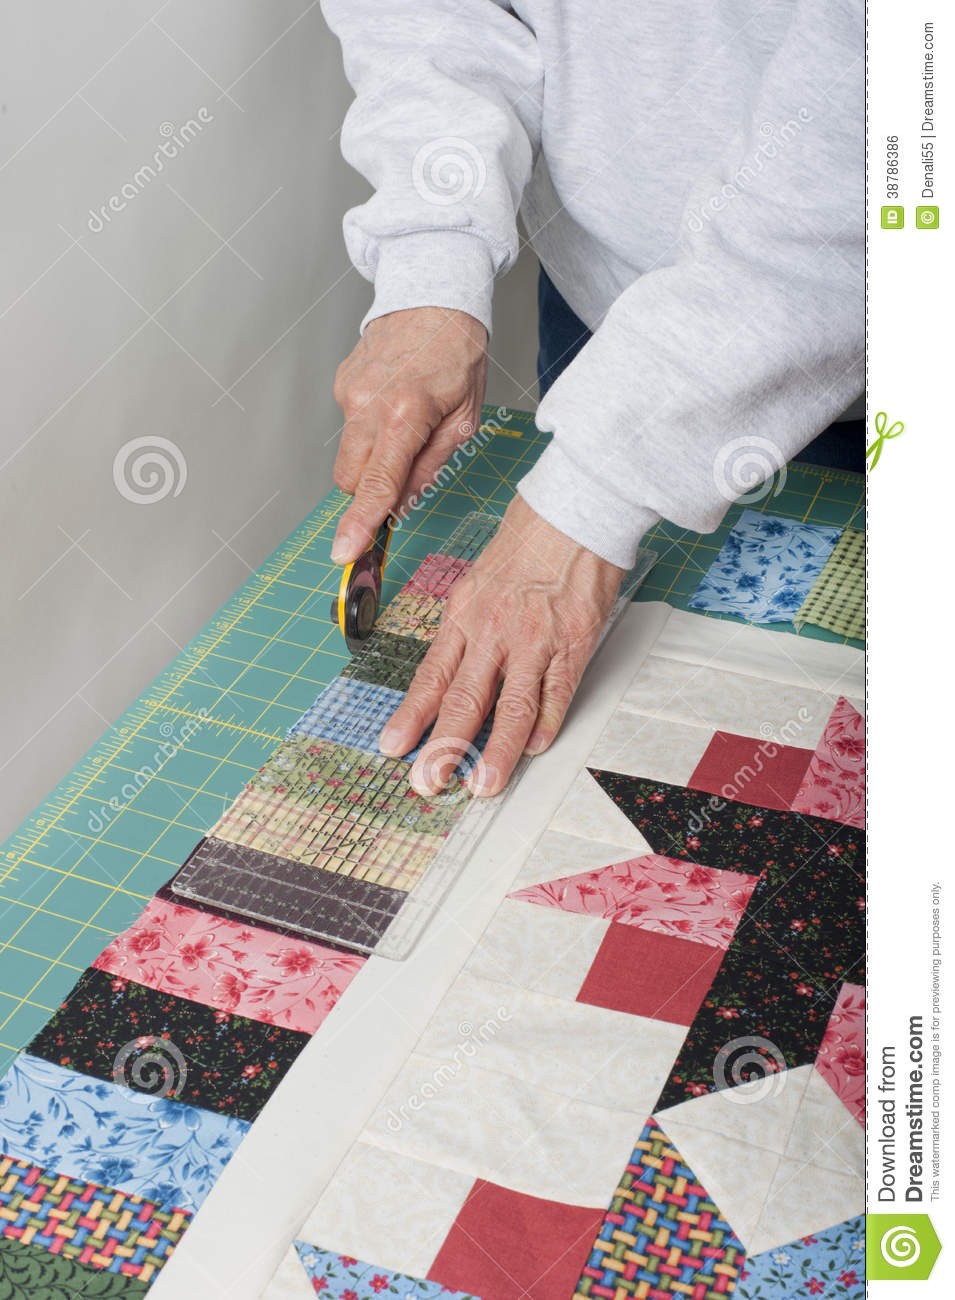 Quilter Trimming Piano Keys Of Quilt Top Fabric. Stock Photo ... : piano key quilt border - Adamdwight.com